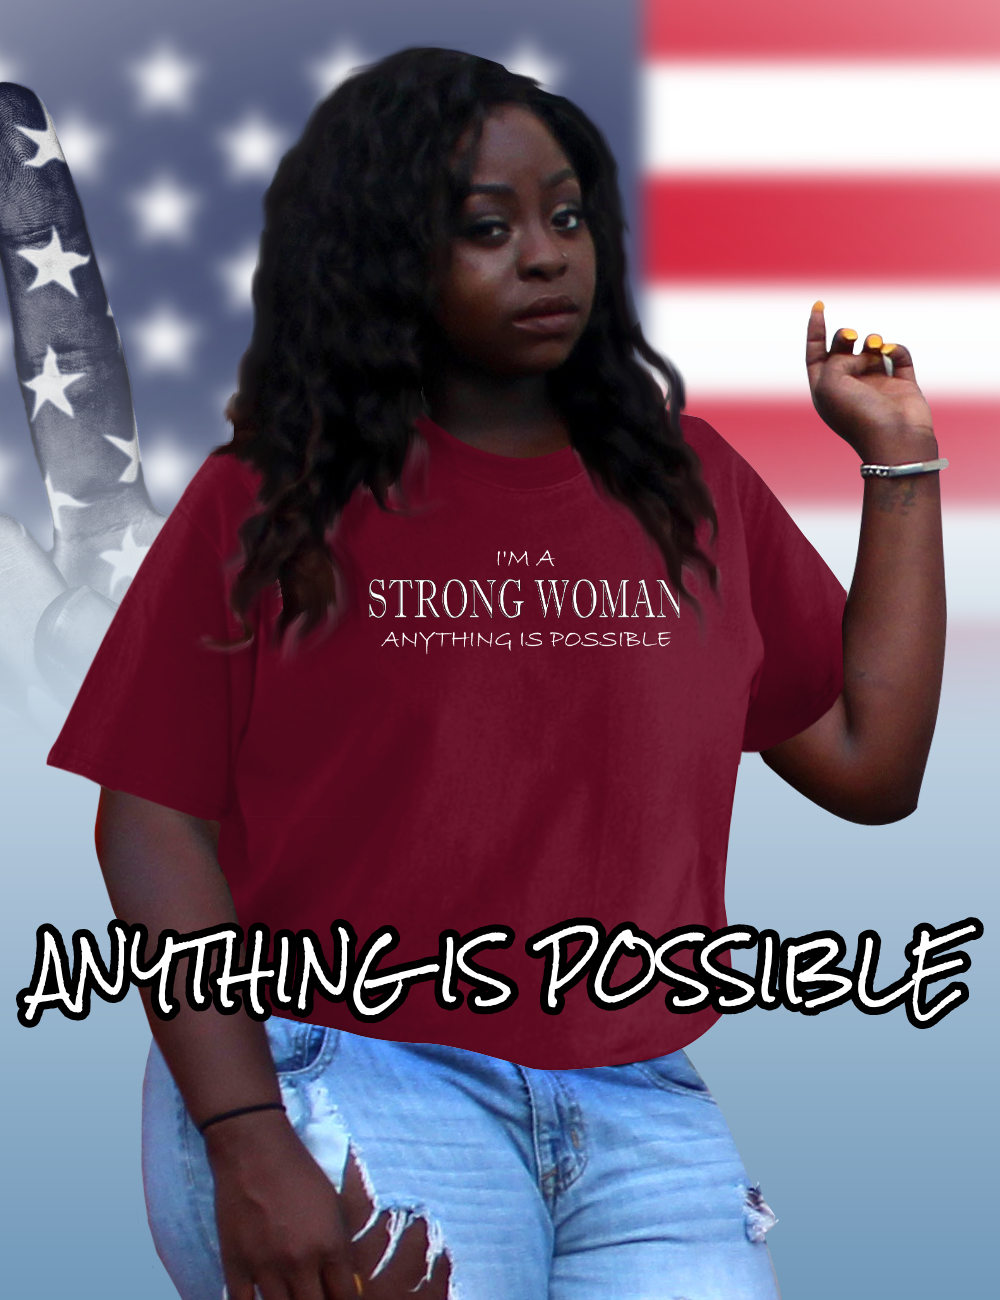 STRONG WOMAN Anything Is Possible anti sexism oppression T-shirt